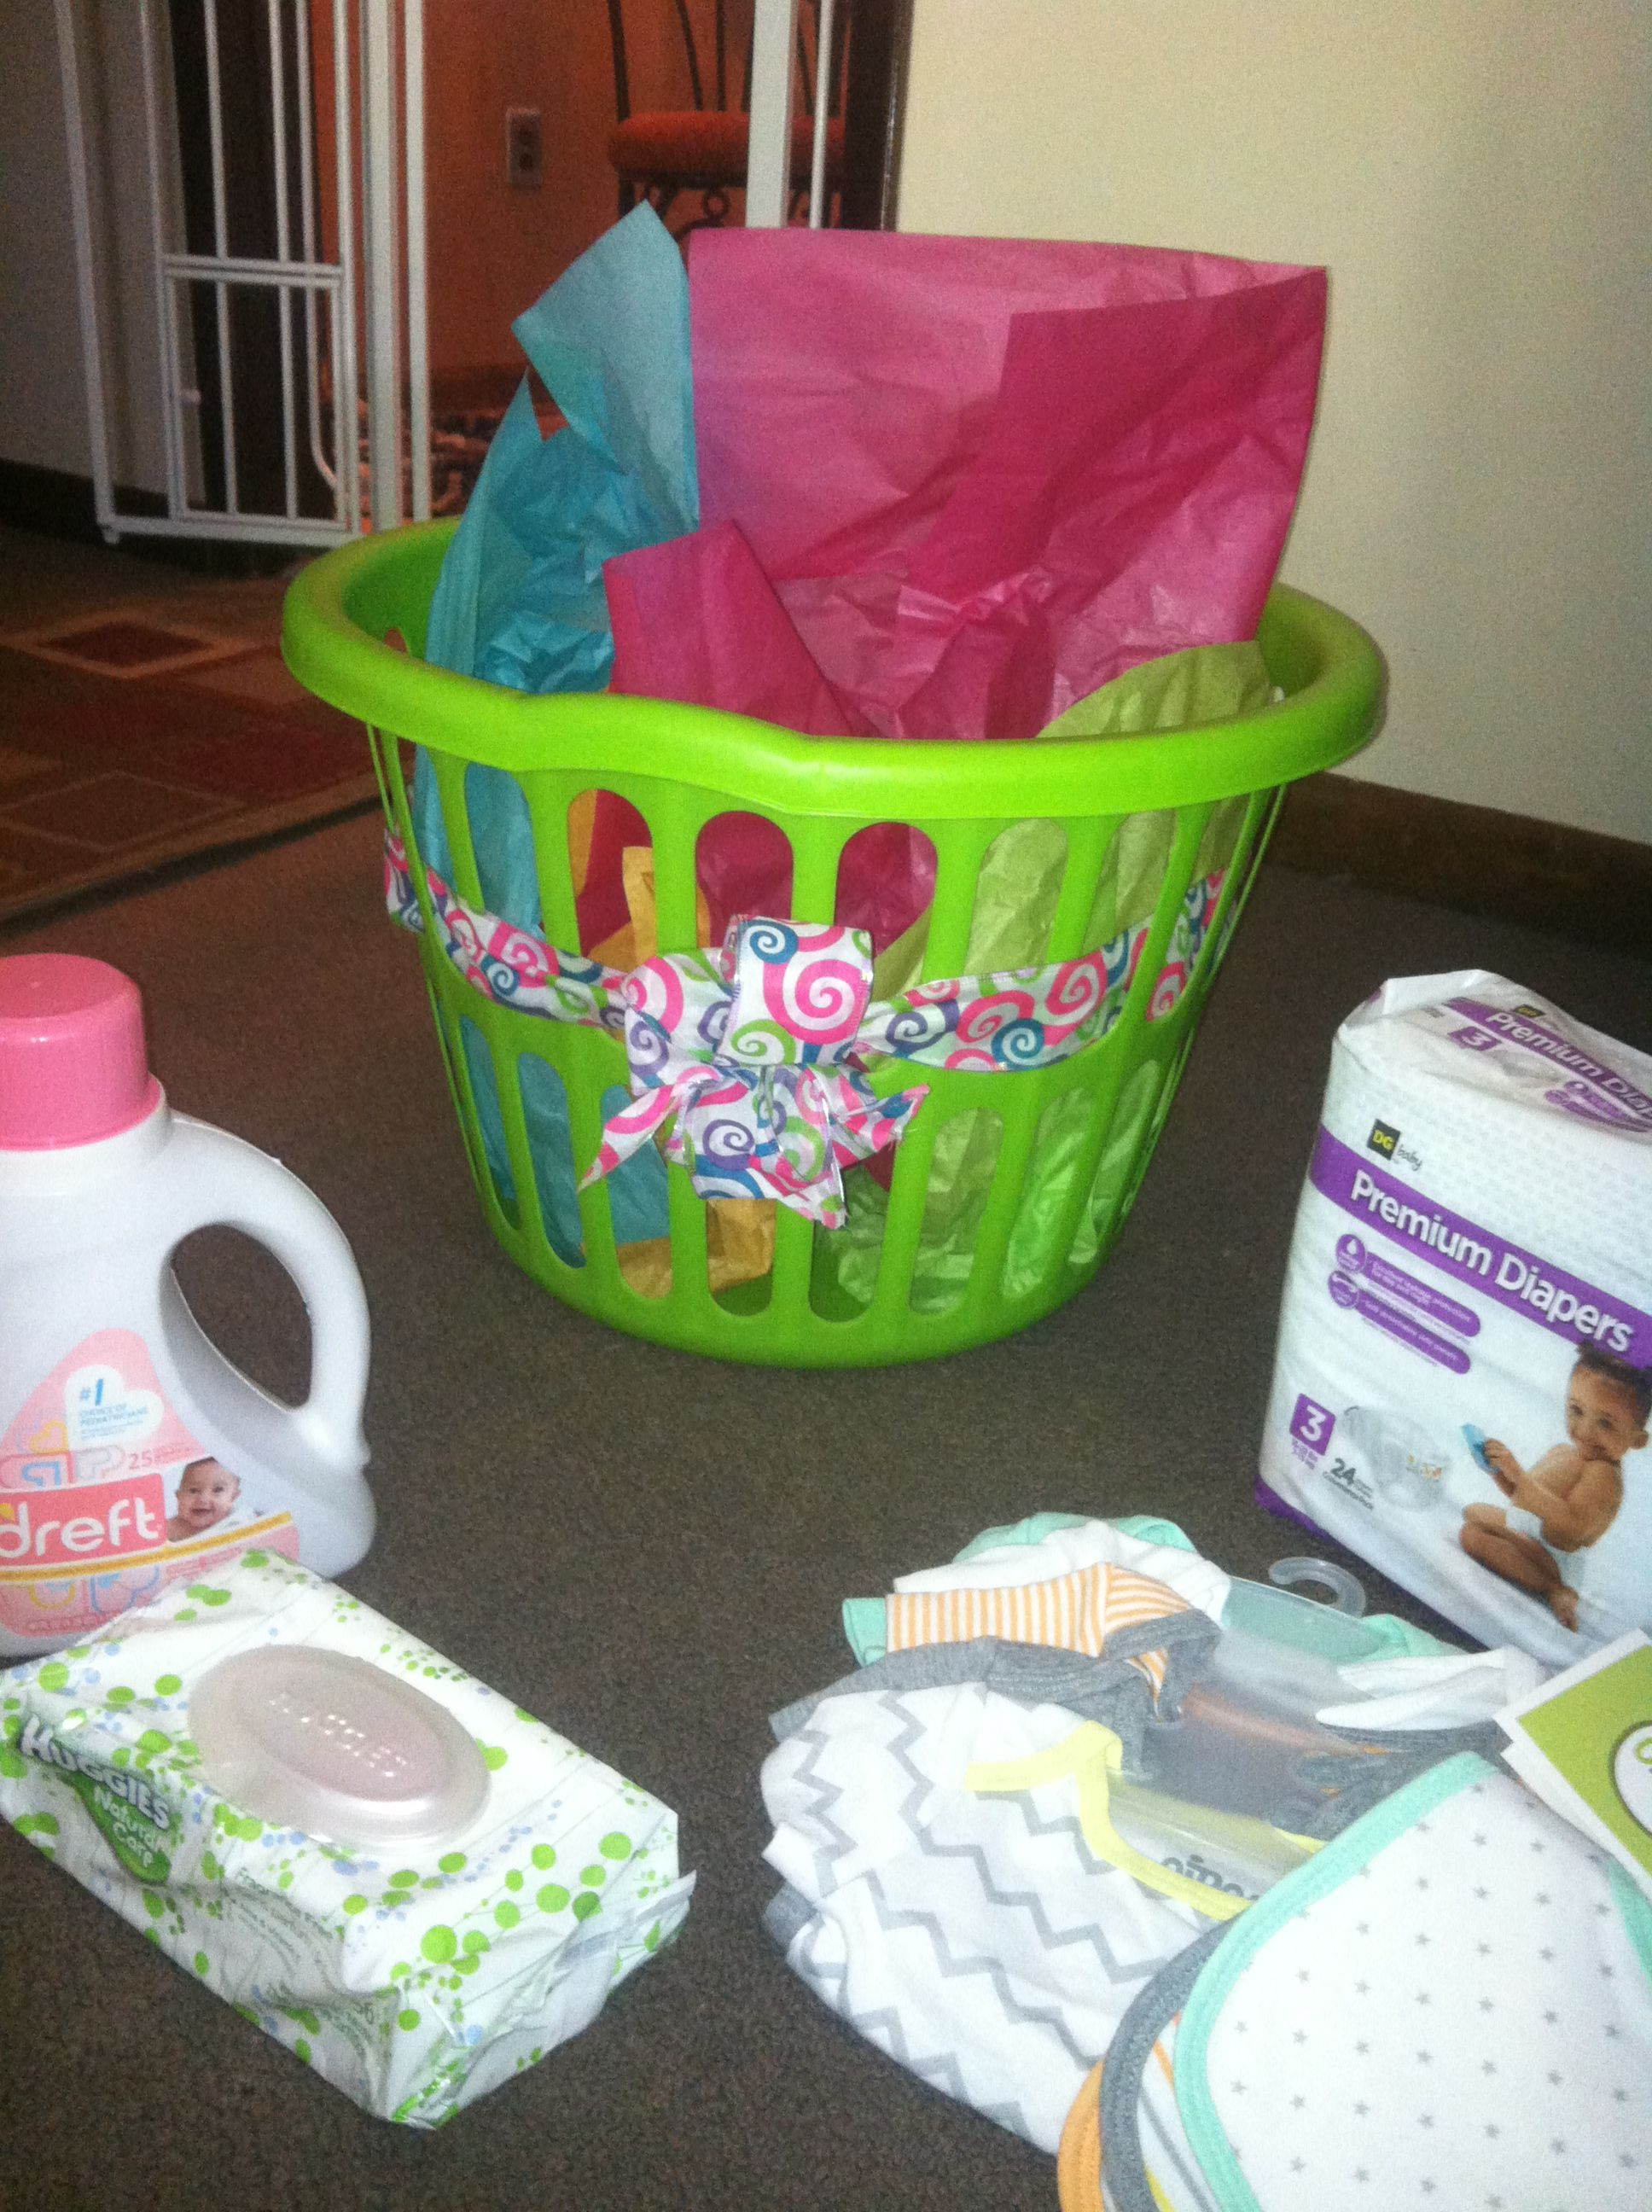 Baby Laundry Basket Gift Dollar General Baby Shower Gift Laundry Basket Filled With